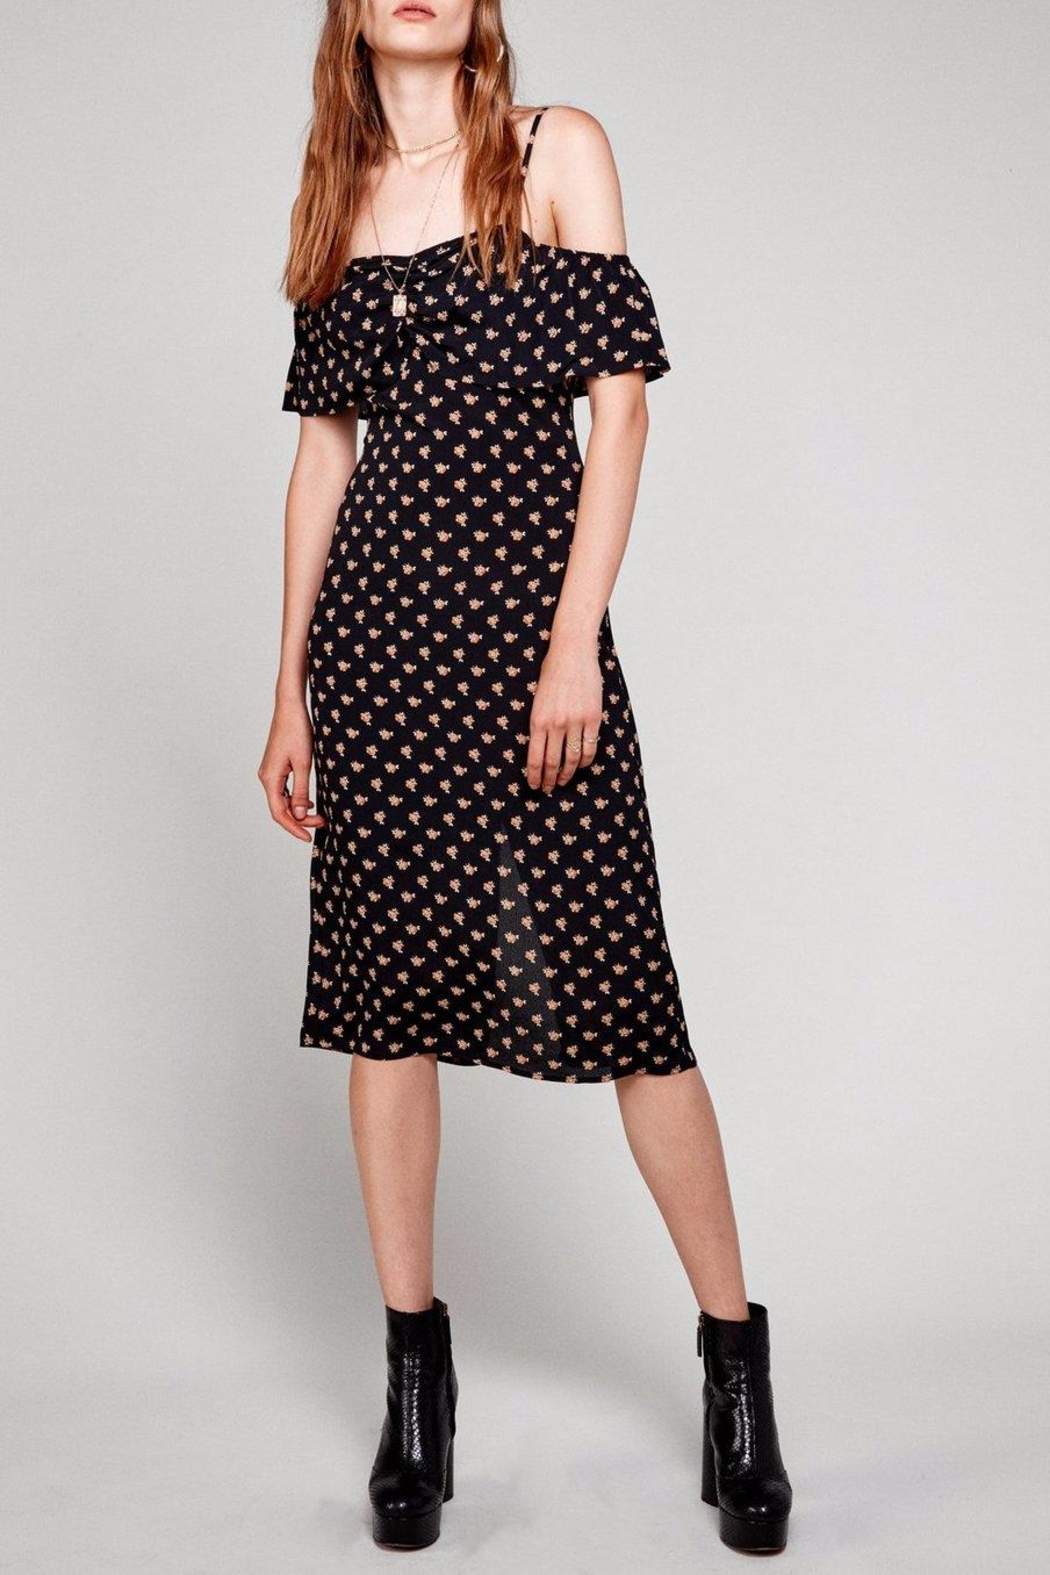 Flynn Skye Morgan Midi Dress - Main Image